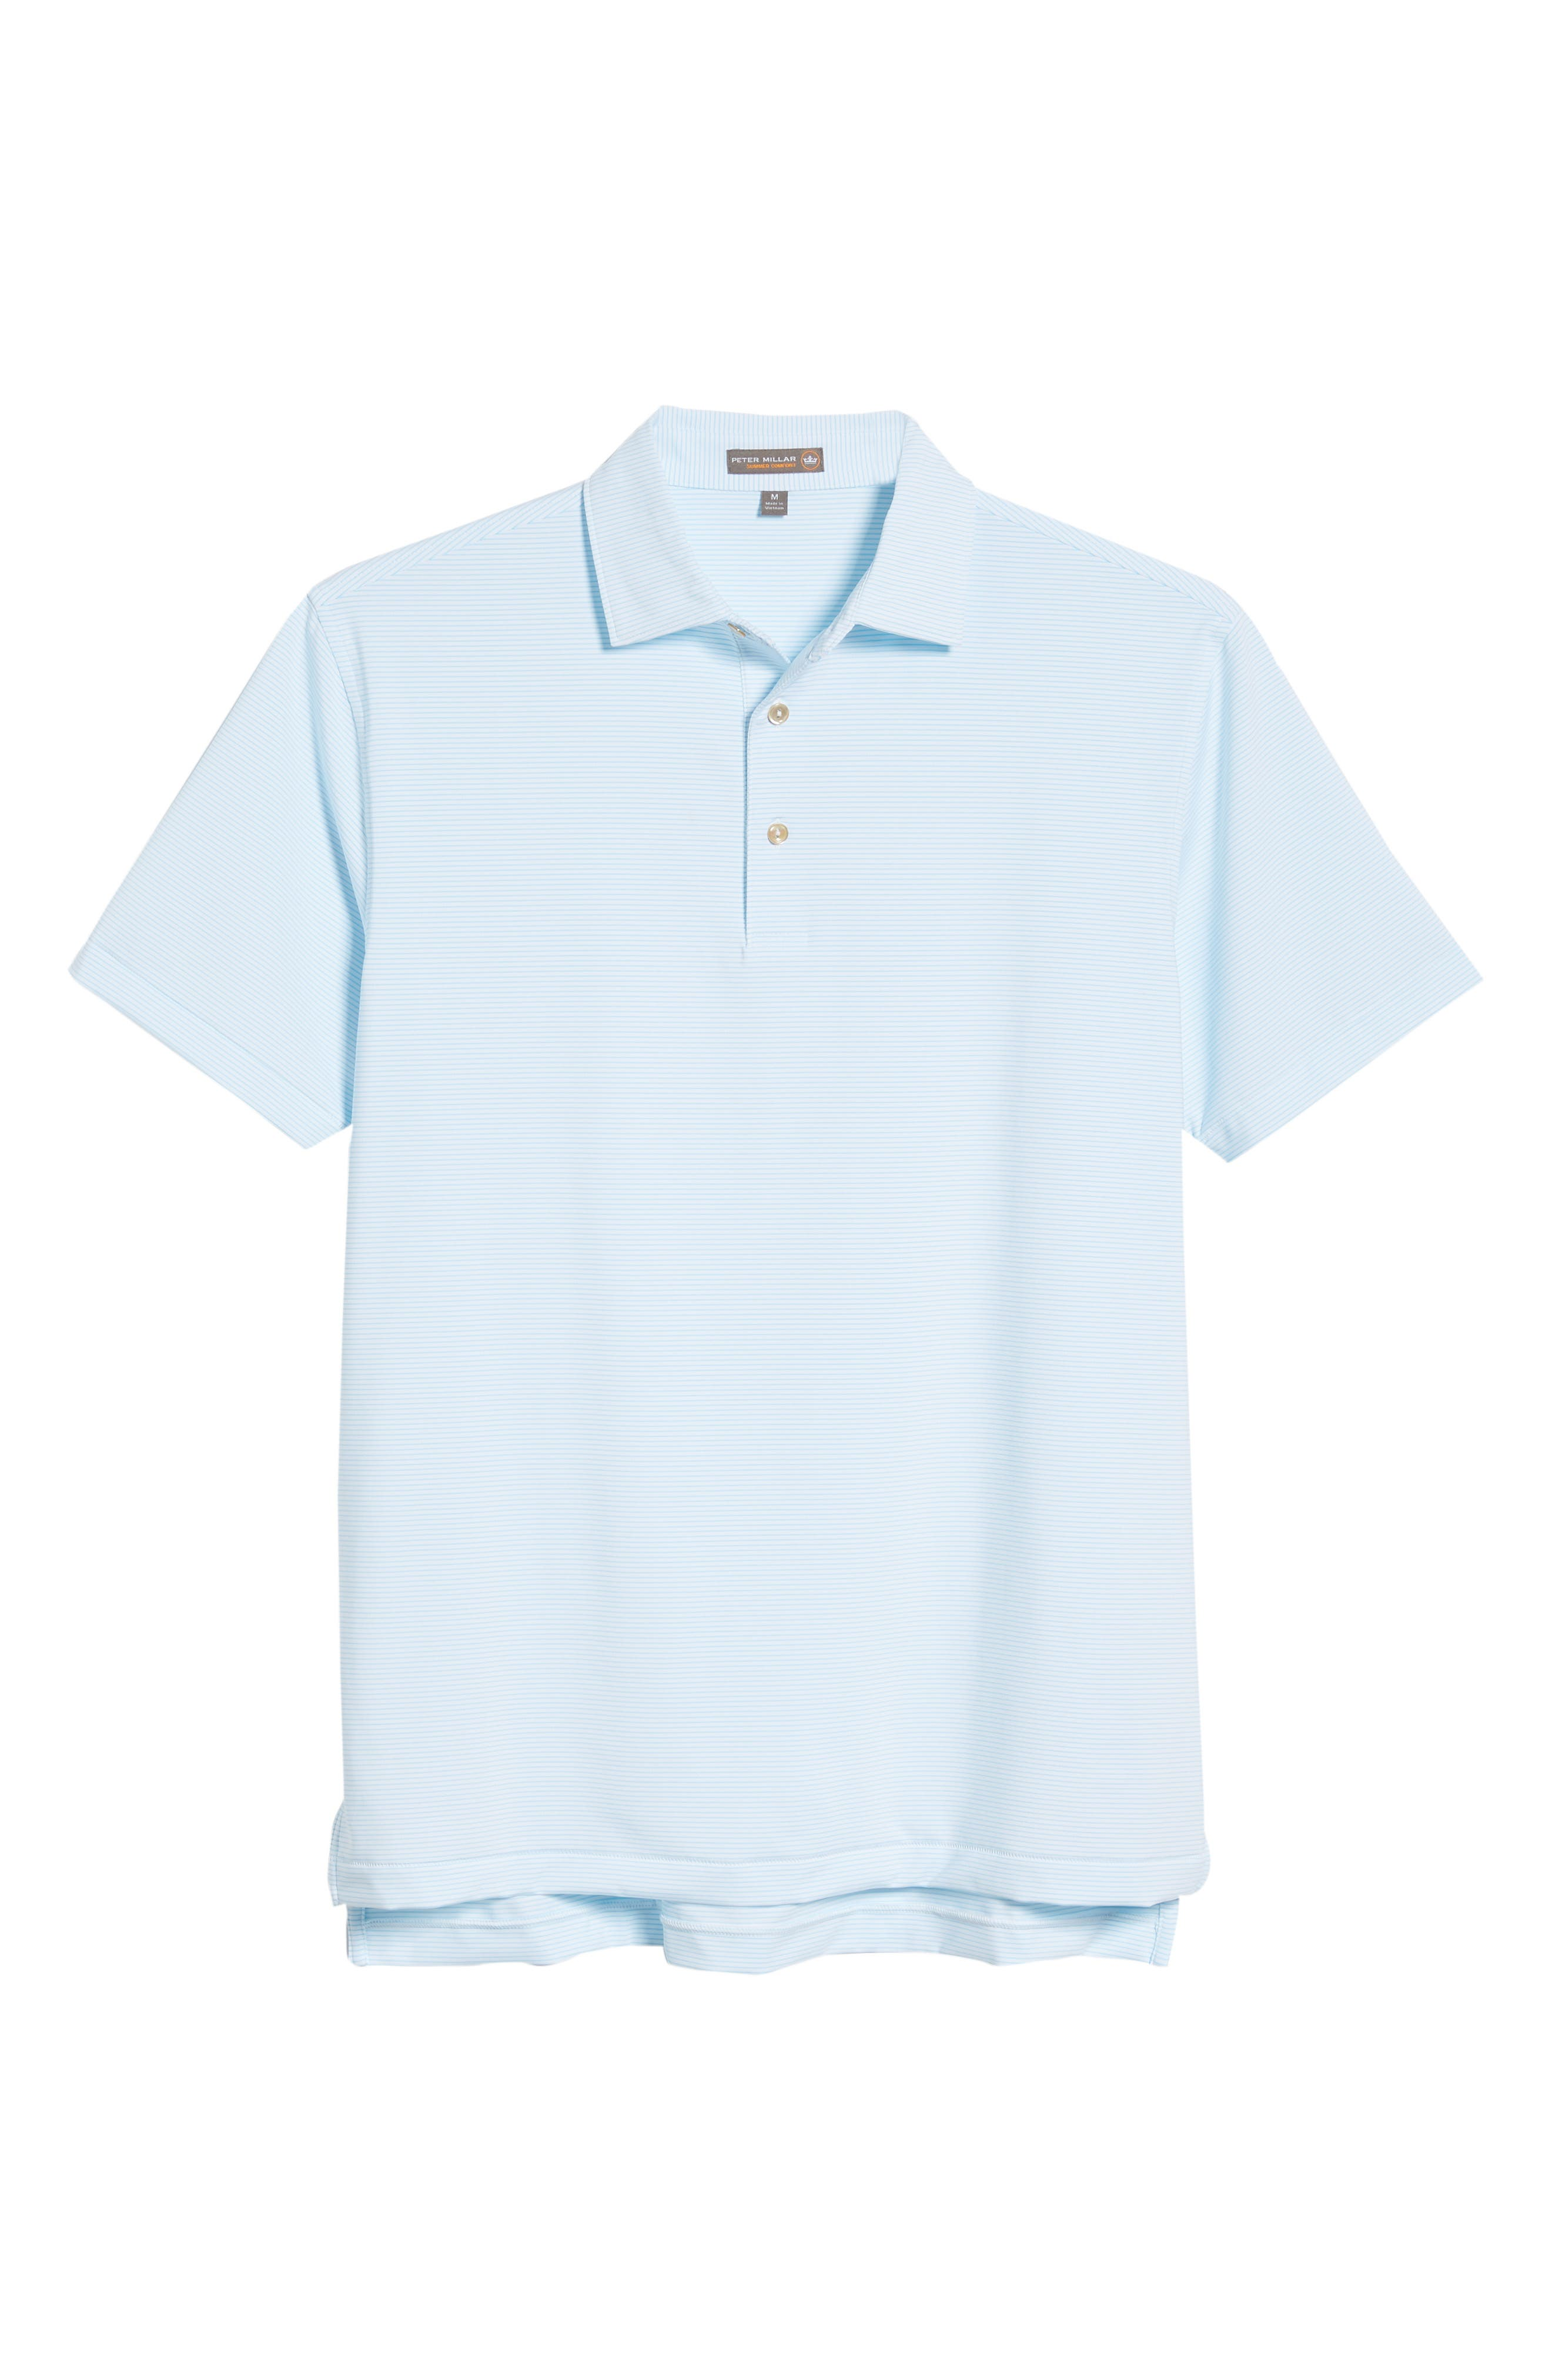 Halford Stripe Stretch Jersey Polo,                             Alternate thumbnail 6, color,                             White/ Grotto Blue